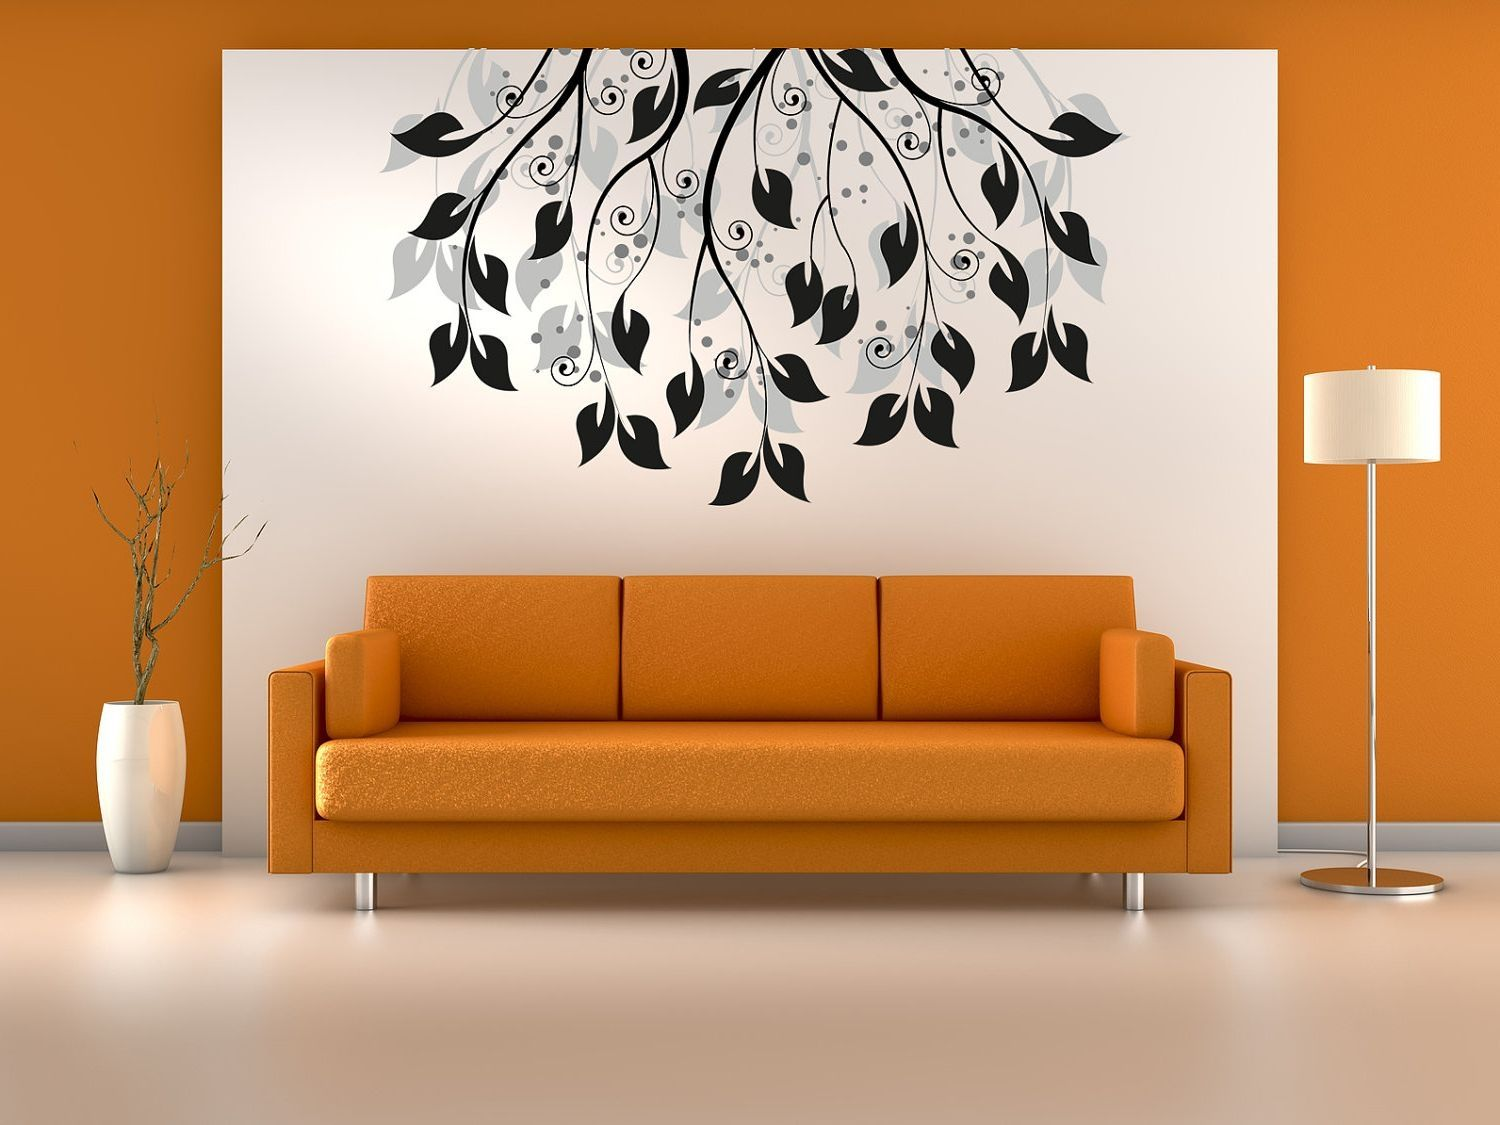 100+ Modern Wall Art Decor Ideas, Designs, Images, Decoration ...